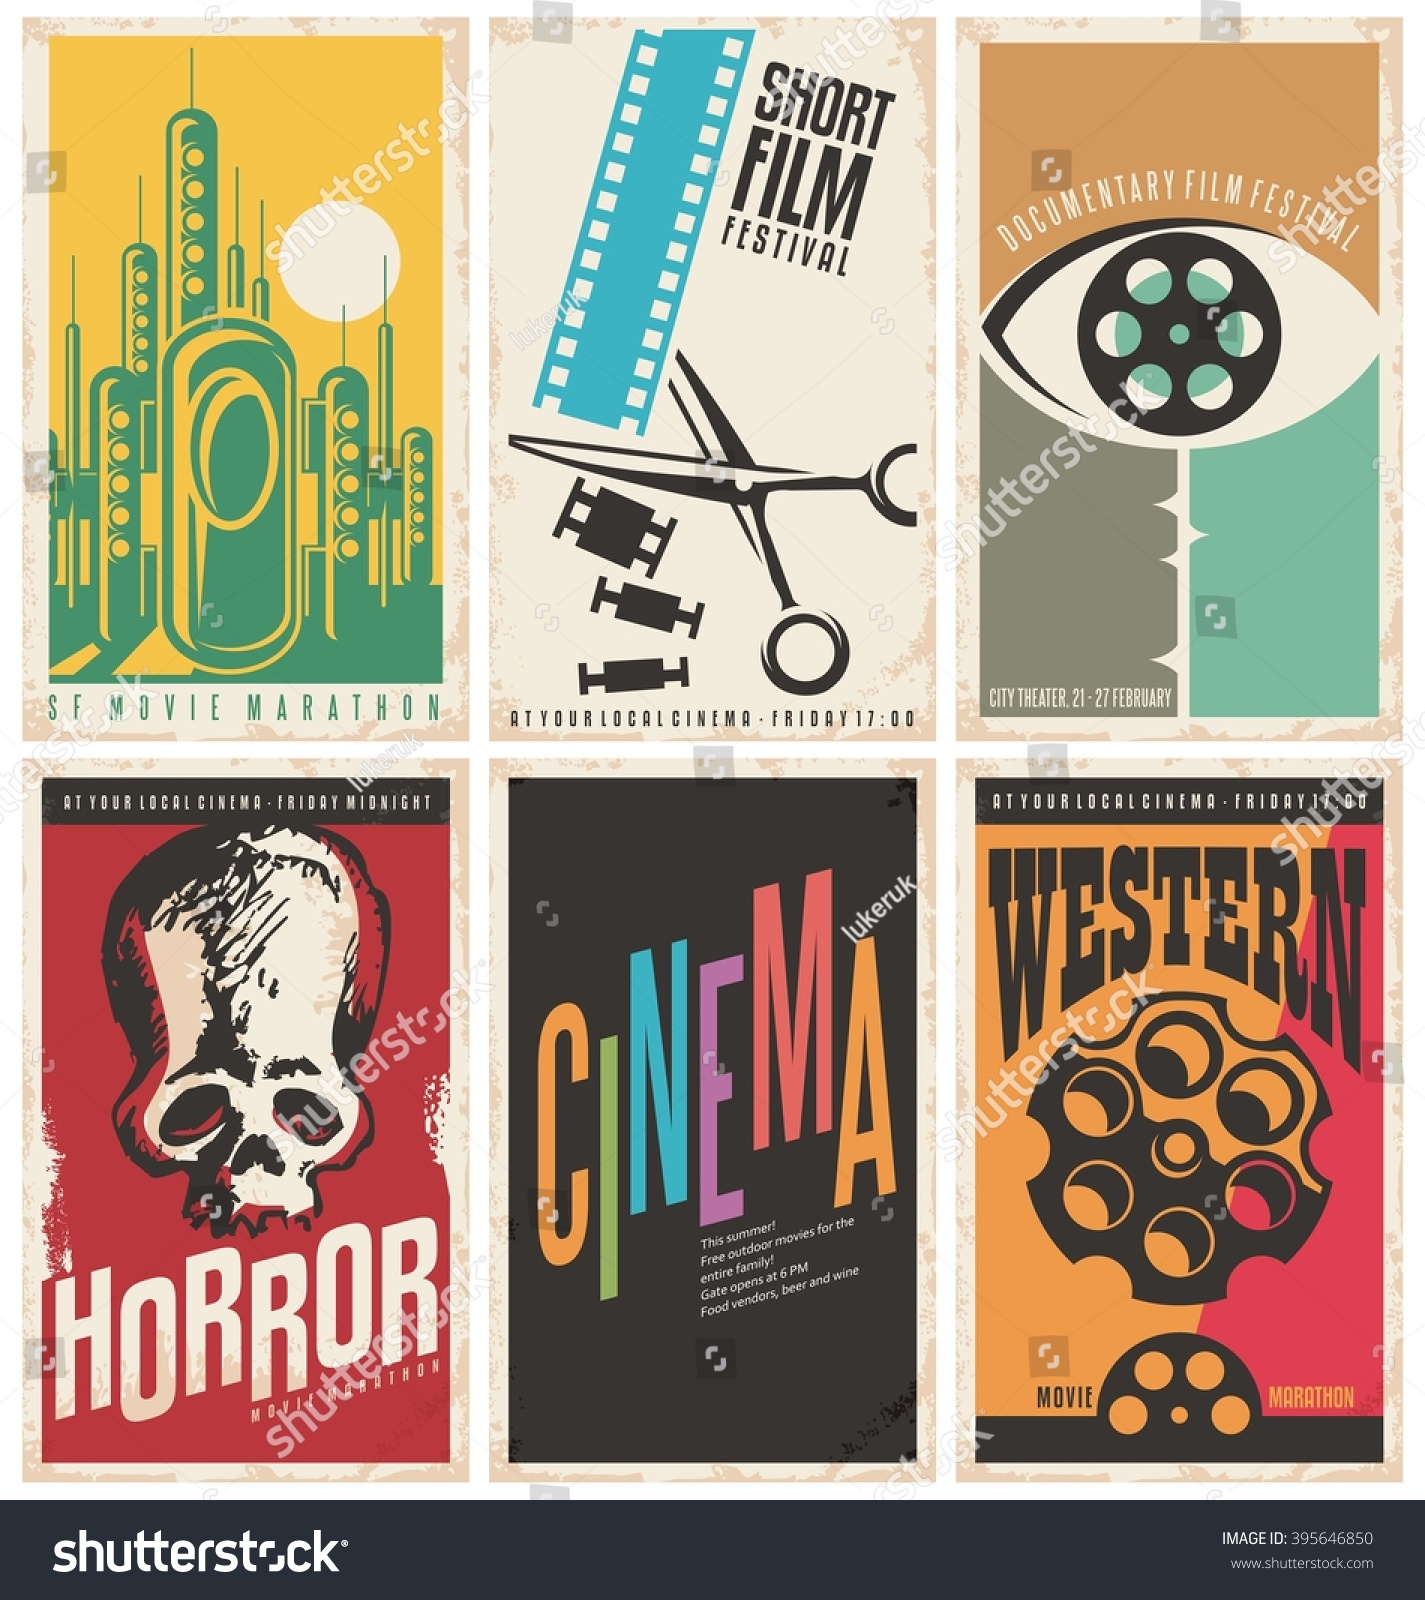 collection retro movie poster design concepts のベクター画像素材